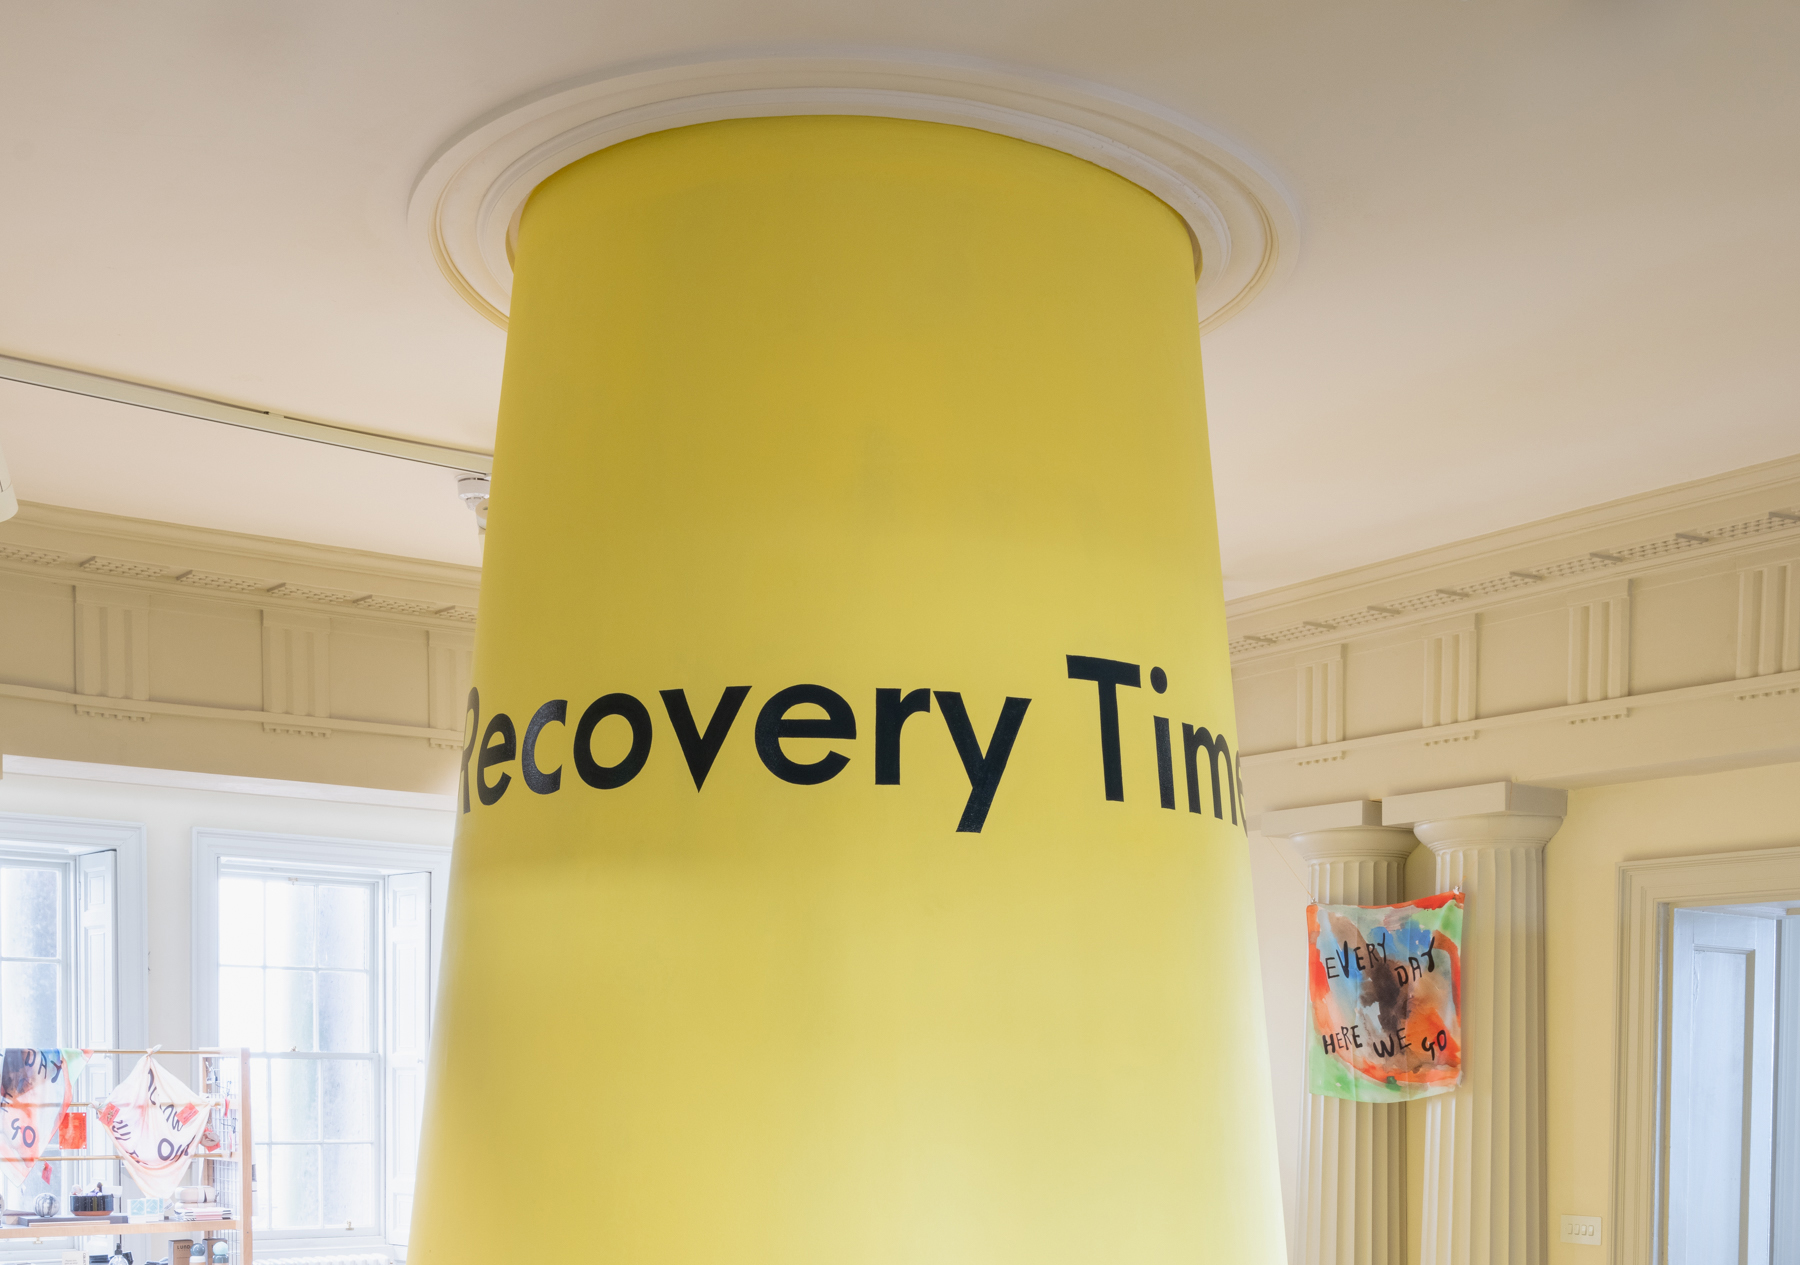 Simon Yuill, 'Recovery Time is Labour Time', painted pilar, 2021.